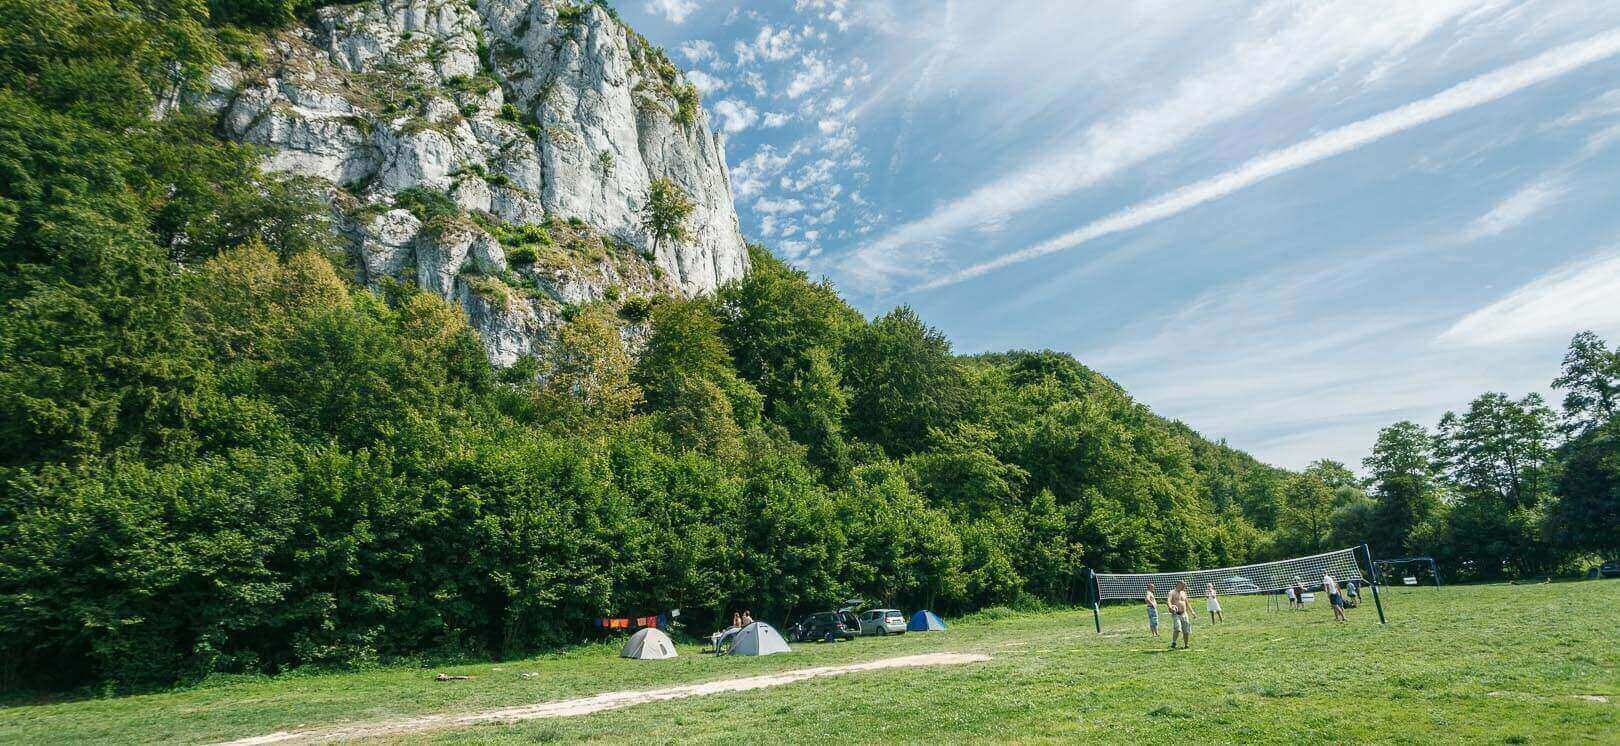 Camping and restaurant, Kraków valleys. The longest rock climbing routes, close to Krakow.